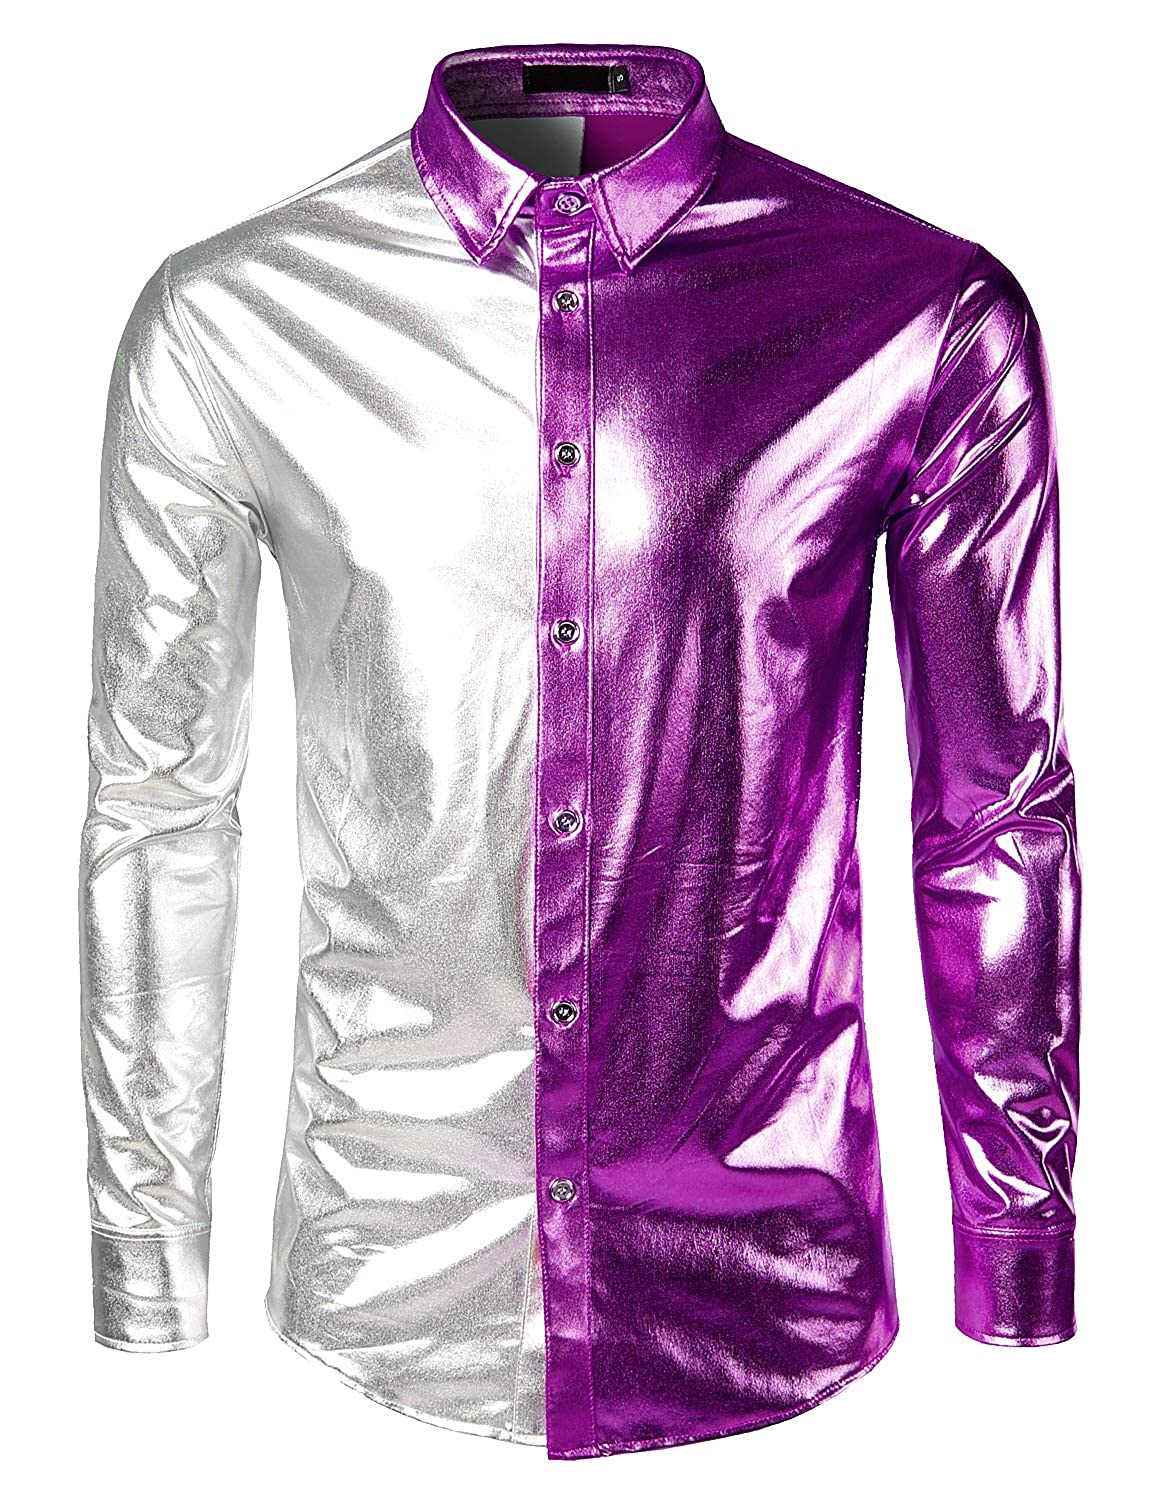 MADA Mens Metallic Shiny Nightclub Slim Fit Long Sleeve Button Down Party Shirts Tops Costume